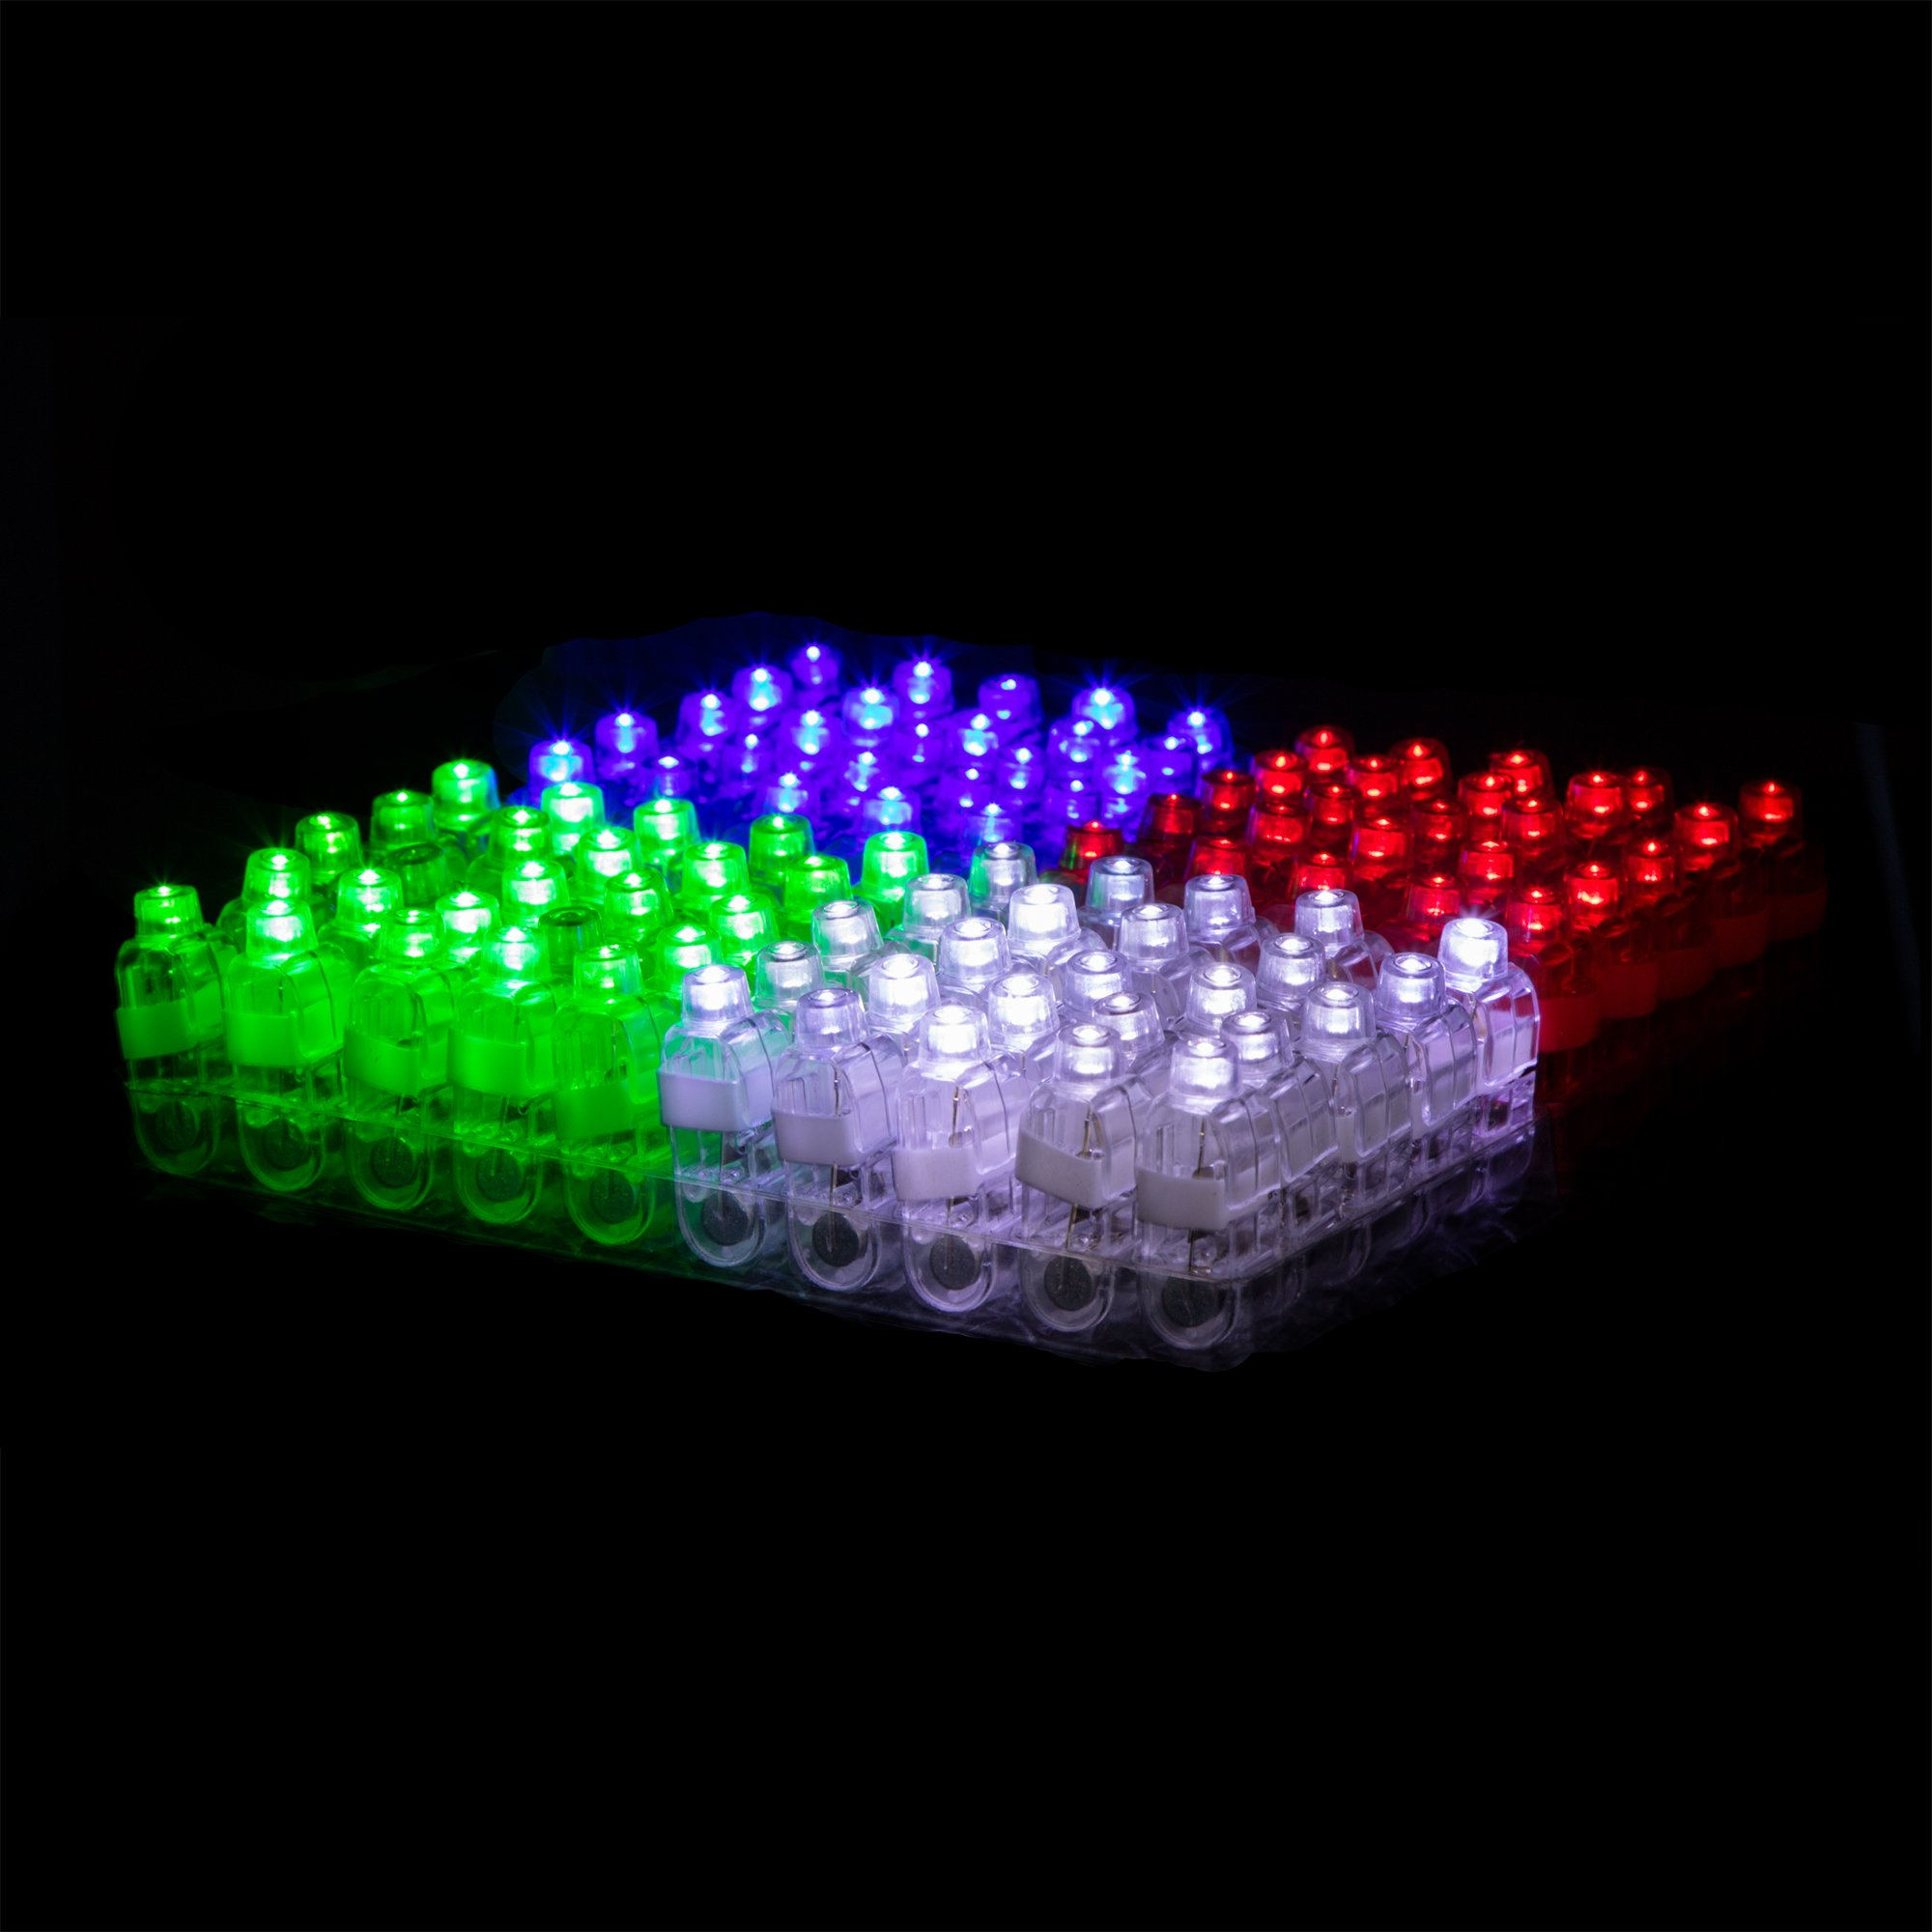 Fingertop LED Party Favors for Kids – 100 LED Ring Light Party Favors for Adults Boys + Girls Glow in The Dark Party Favor LED Finger Lights Novelties